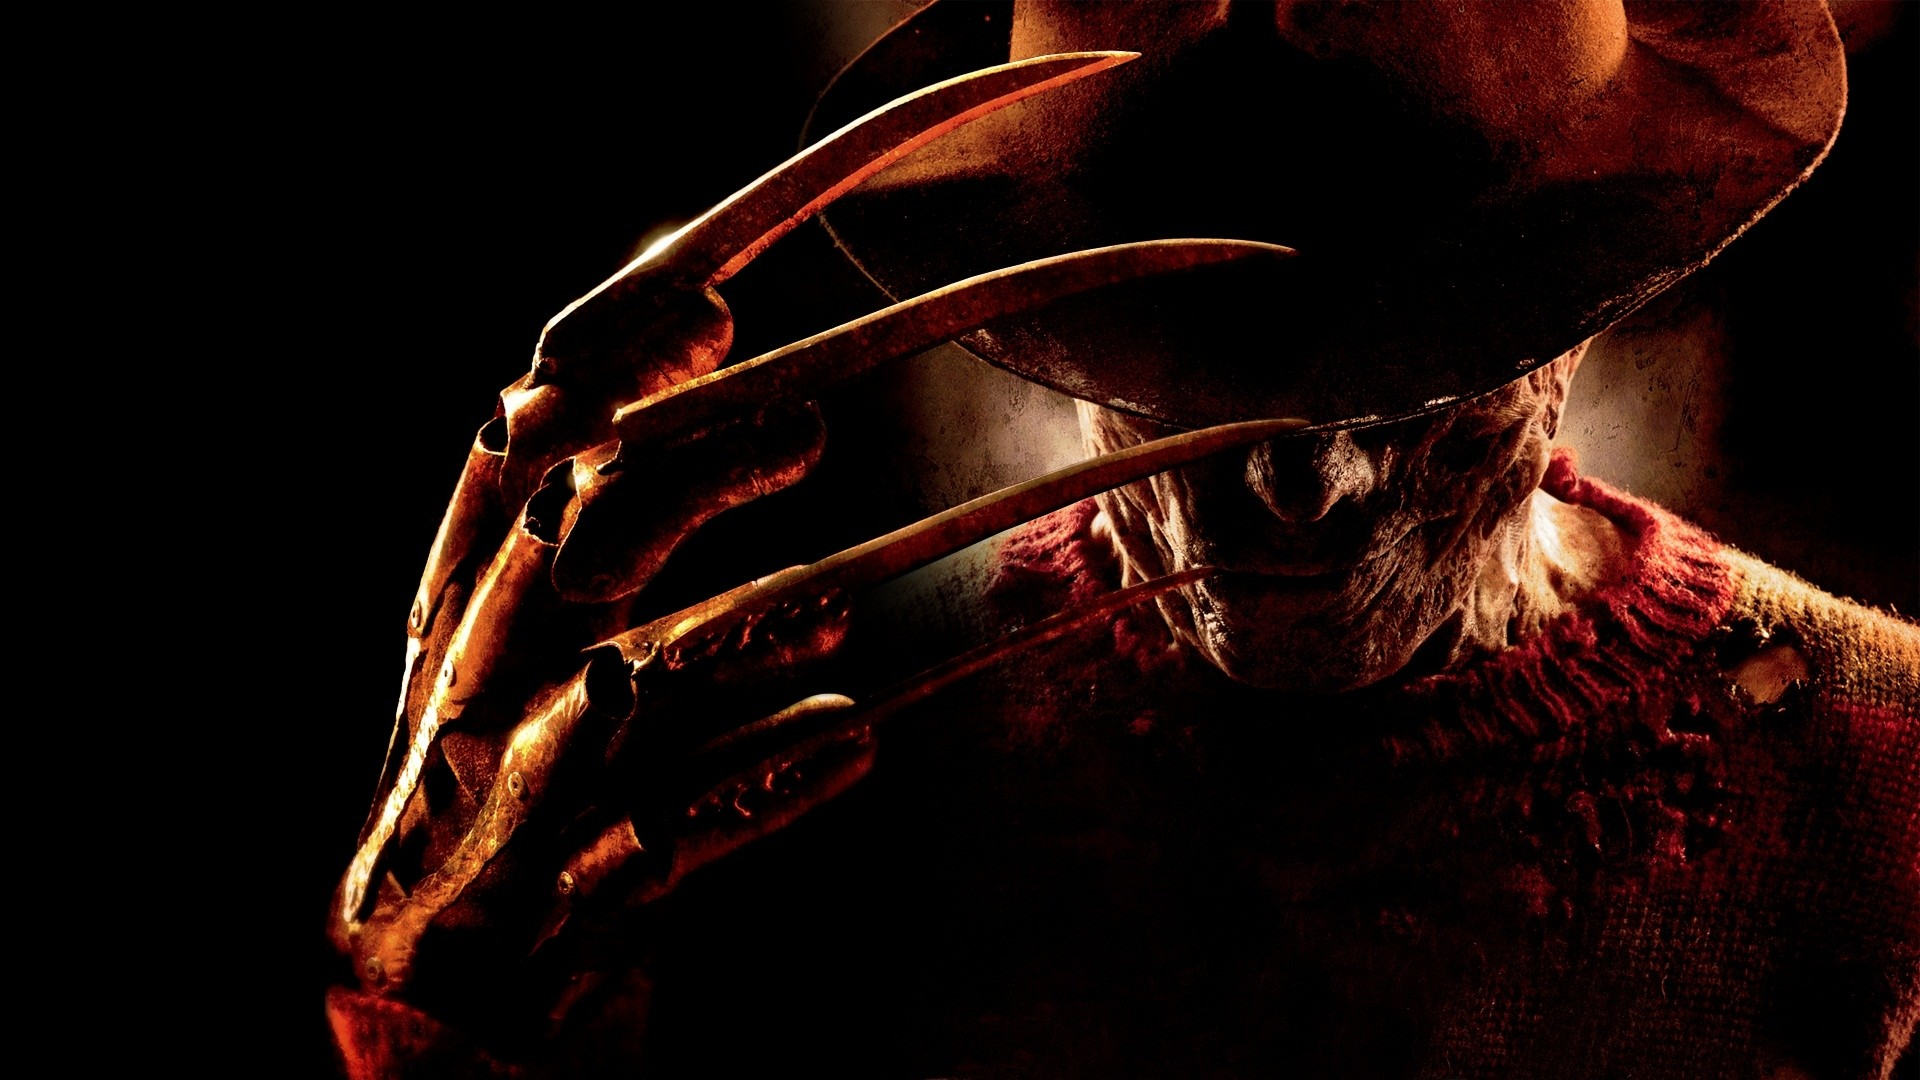 1920x1080 Hd wallpapers gothic freddy krueger wallpaper 1920×1080 wallpaper